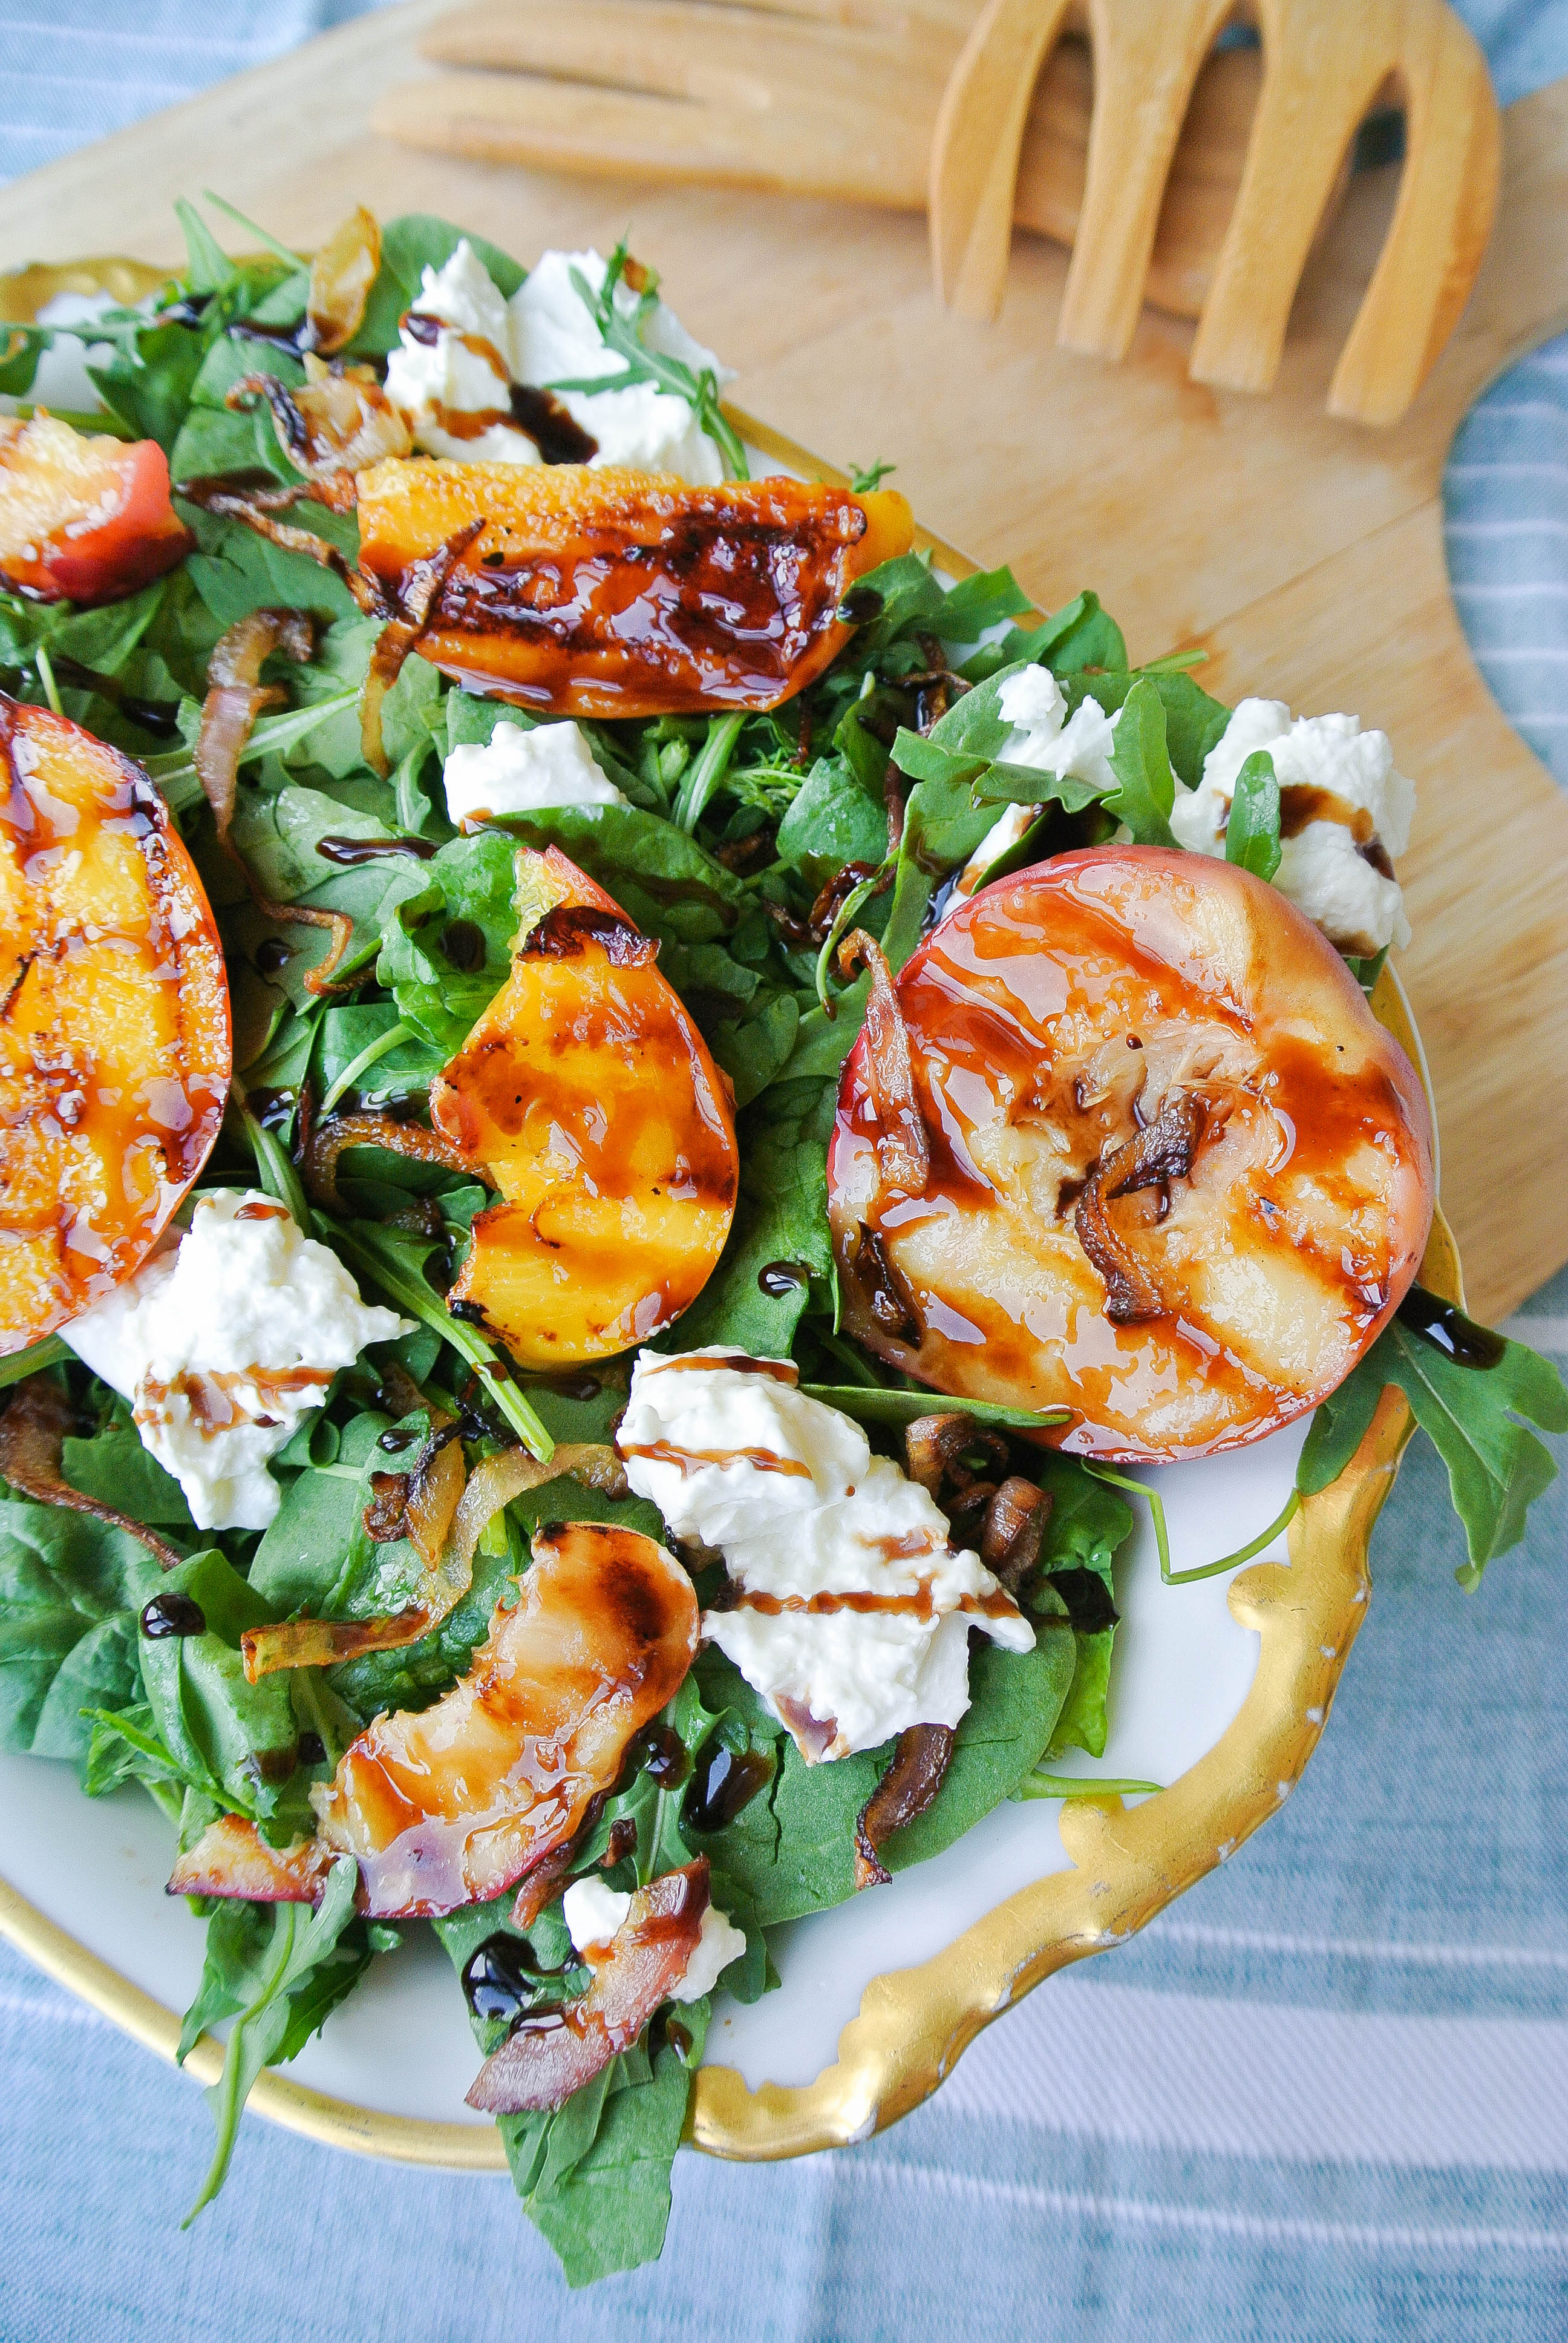 Grilled Peach and Burrata Salad with Balsamic Glaze